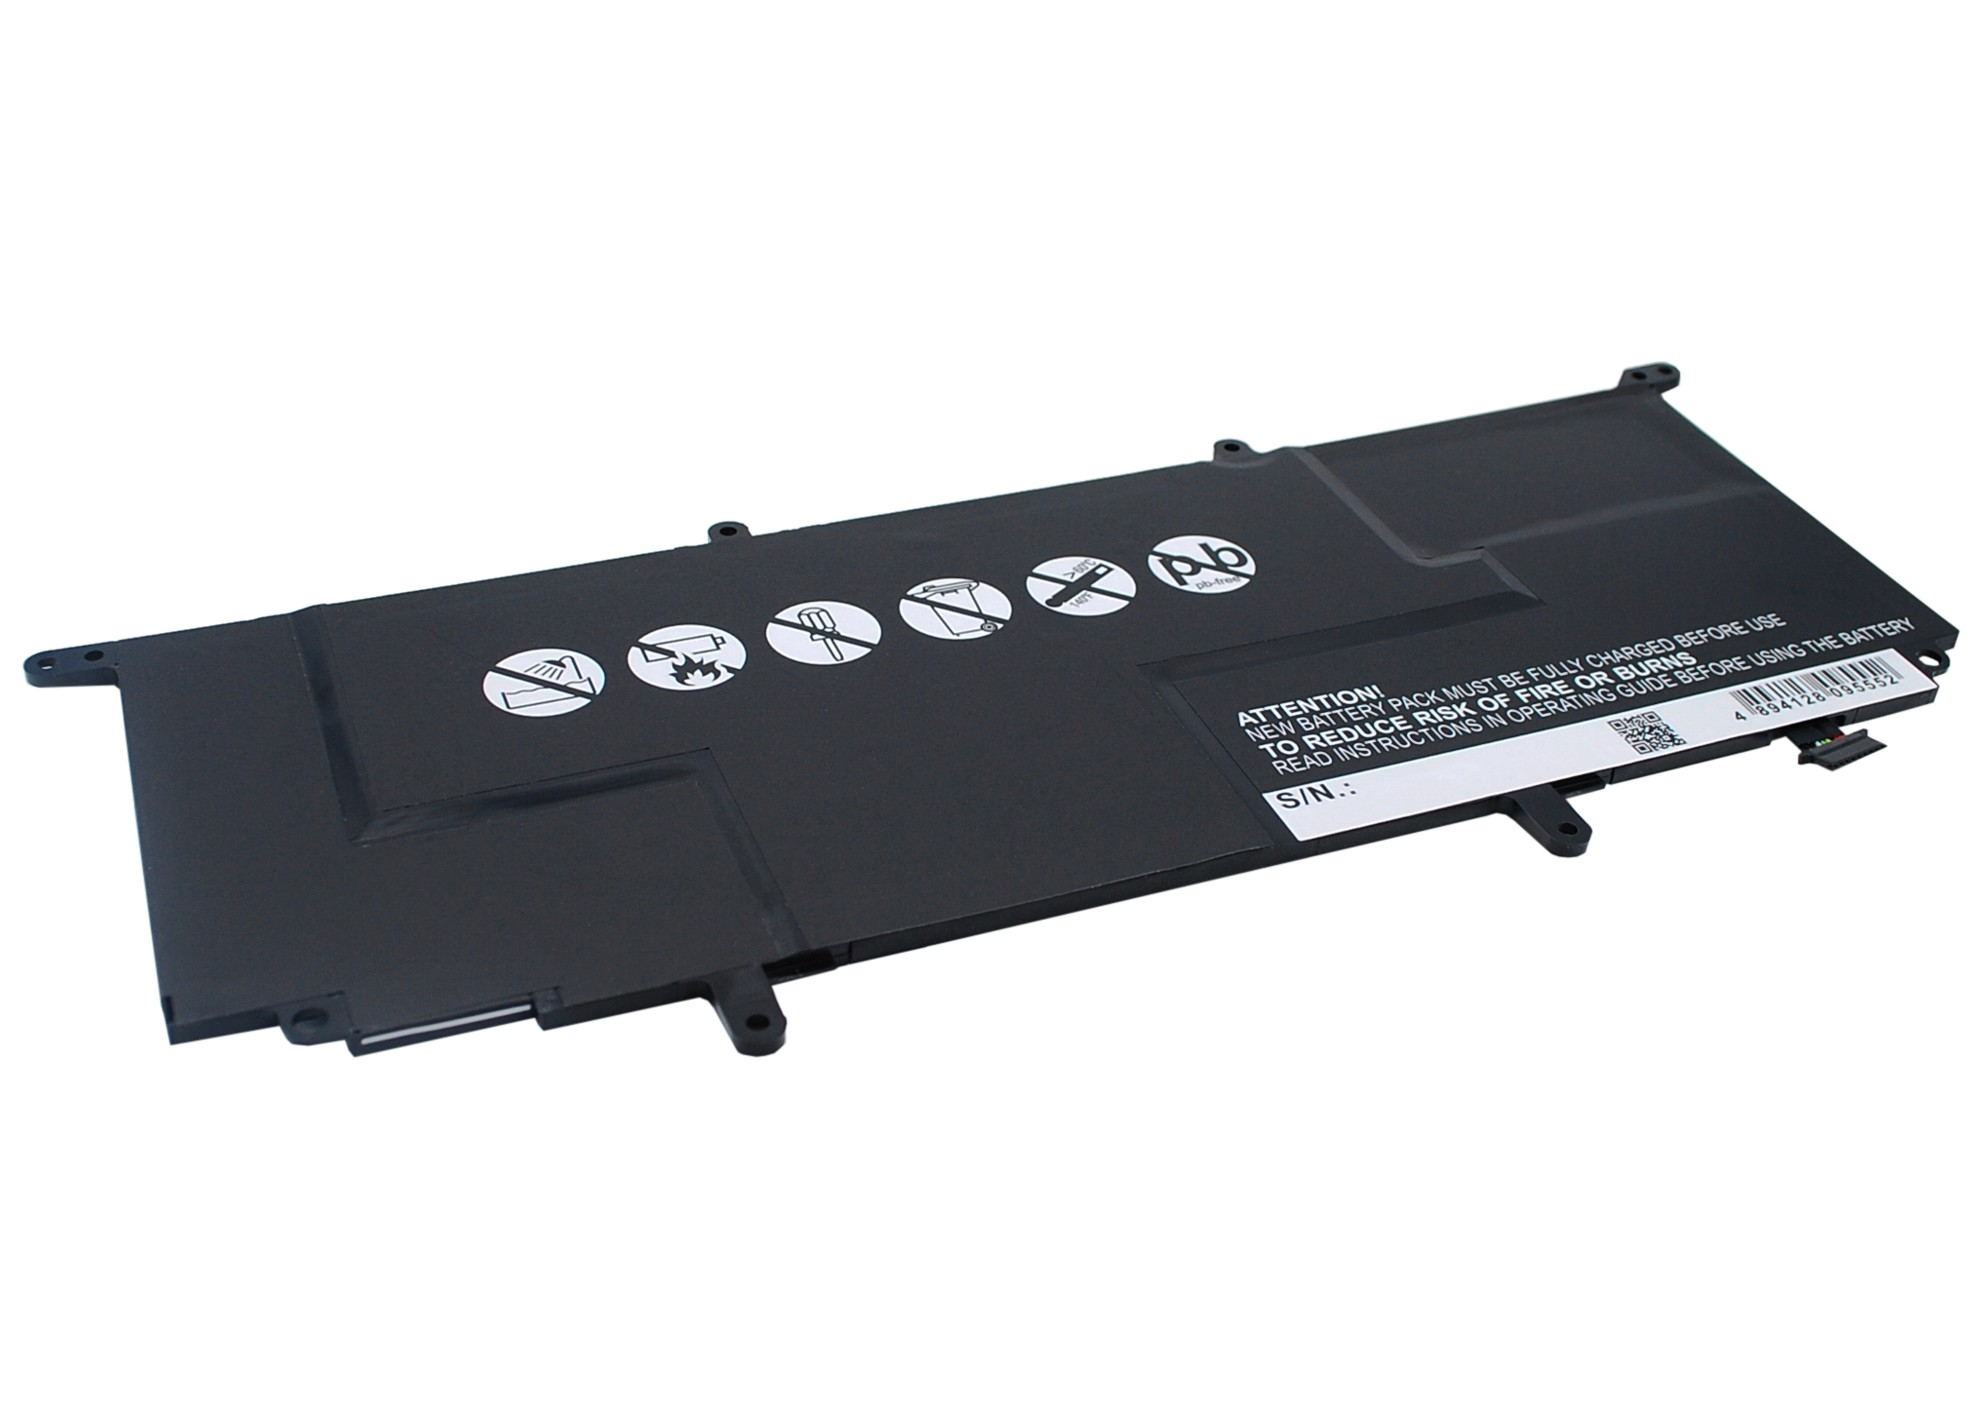 Acumulator compatibil HP model 741348-171